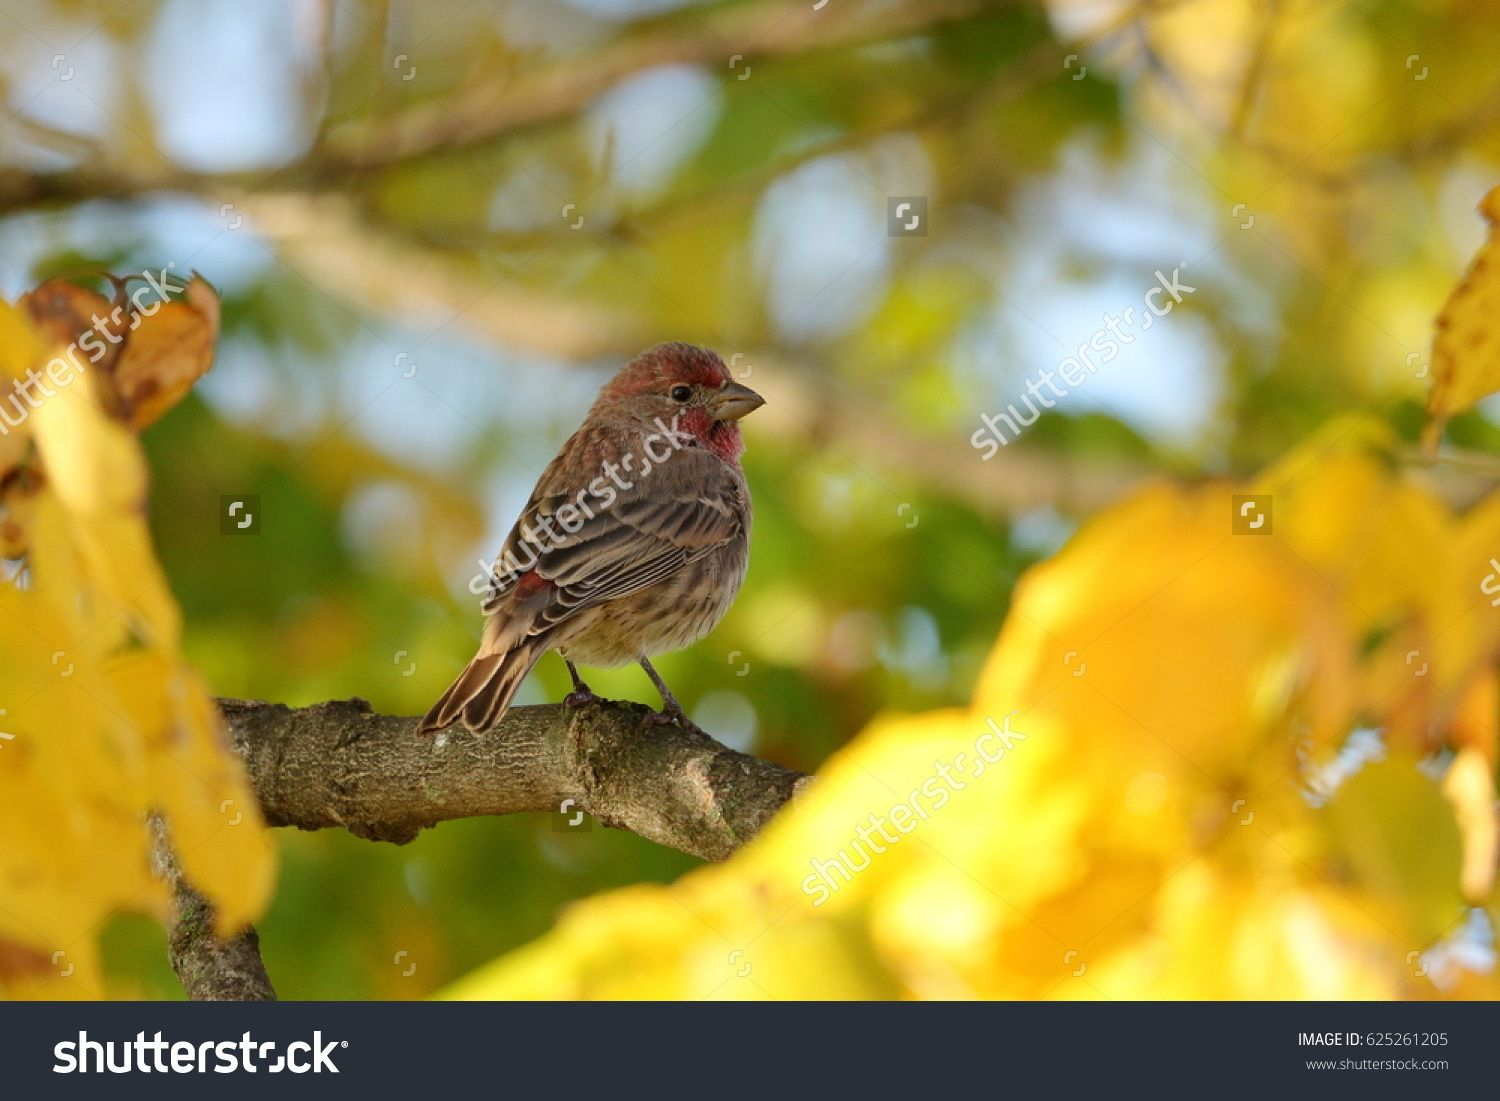 Male House Finch in Maple Tree with yellow autumn leaves.